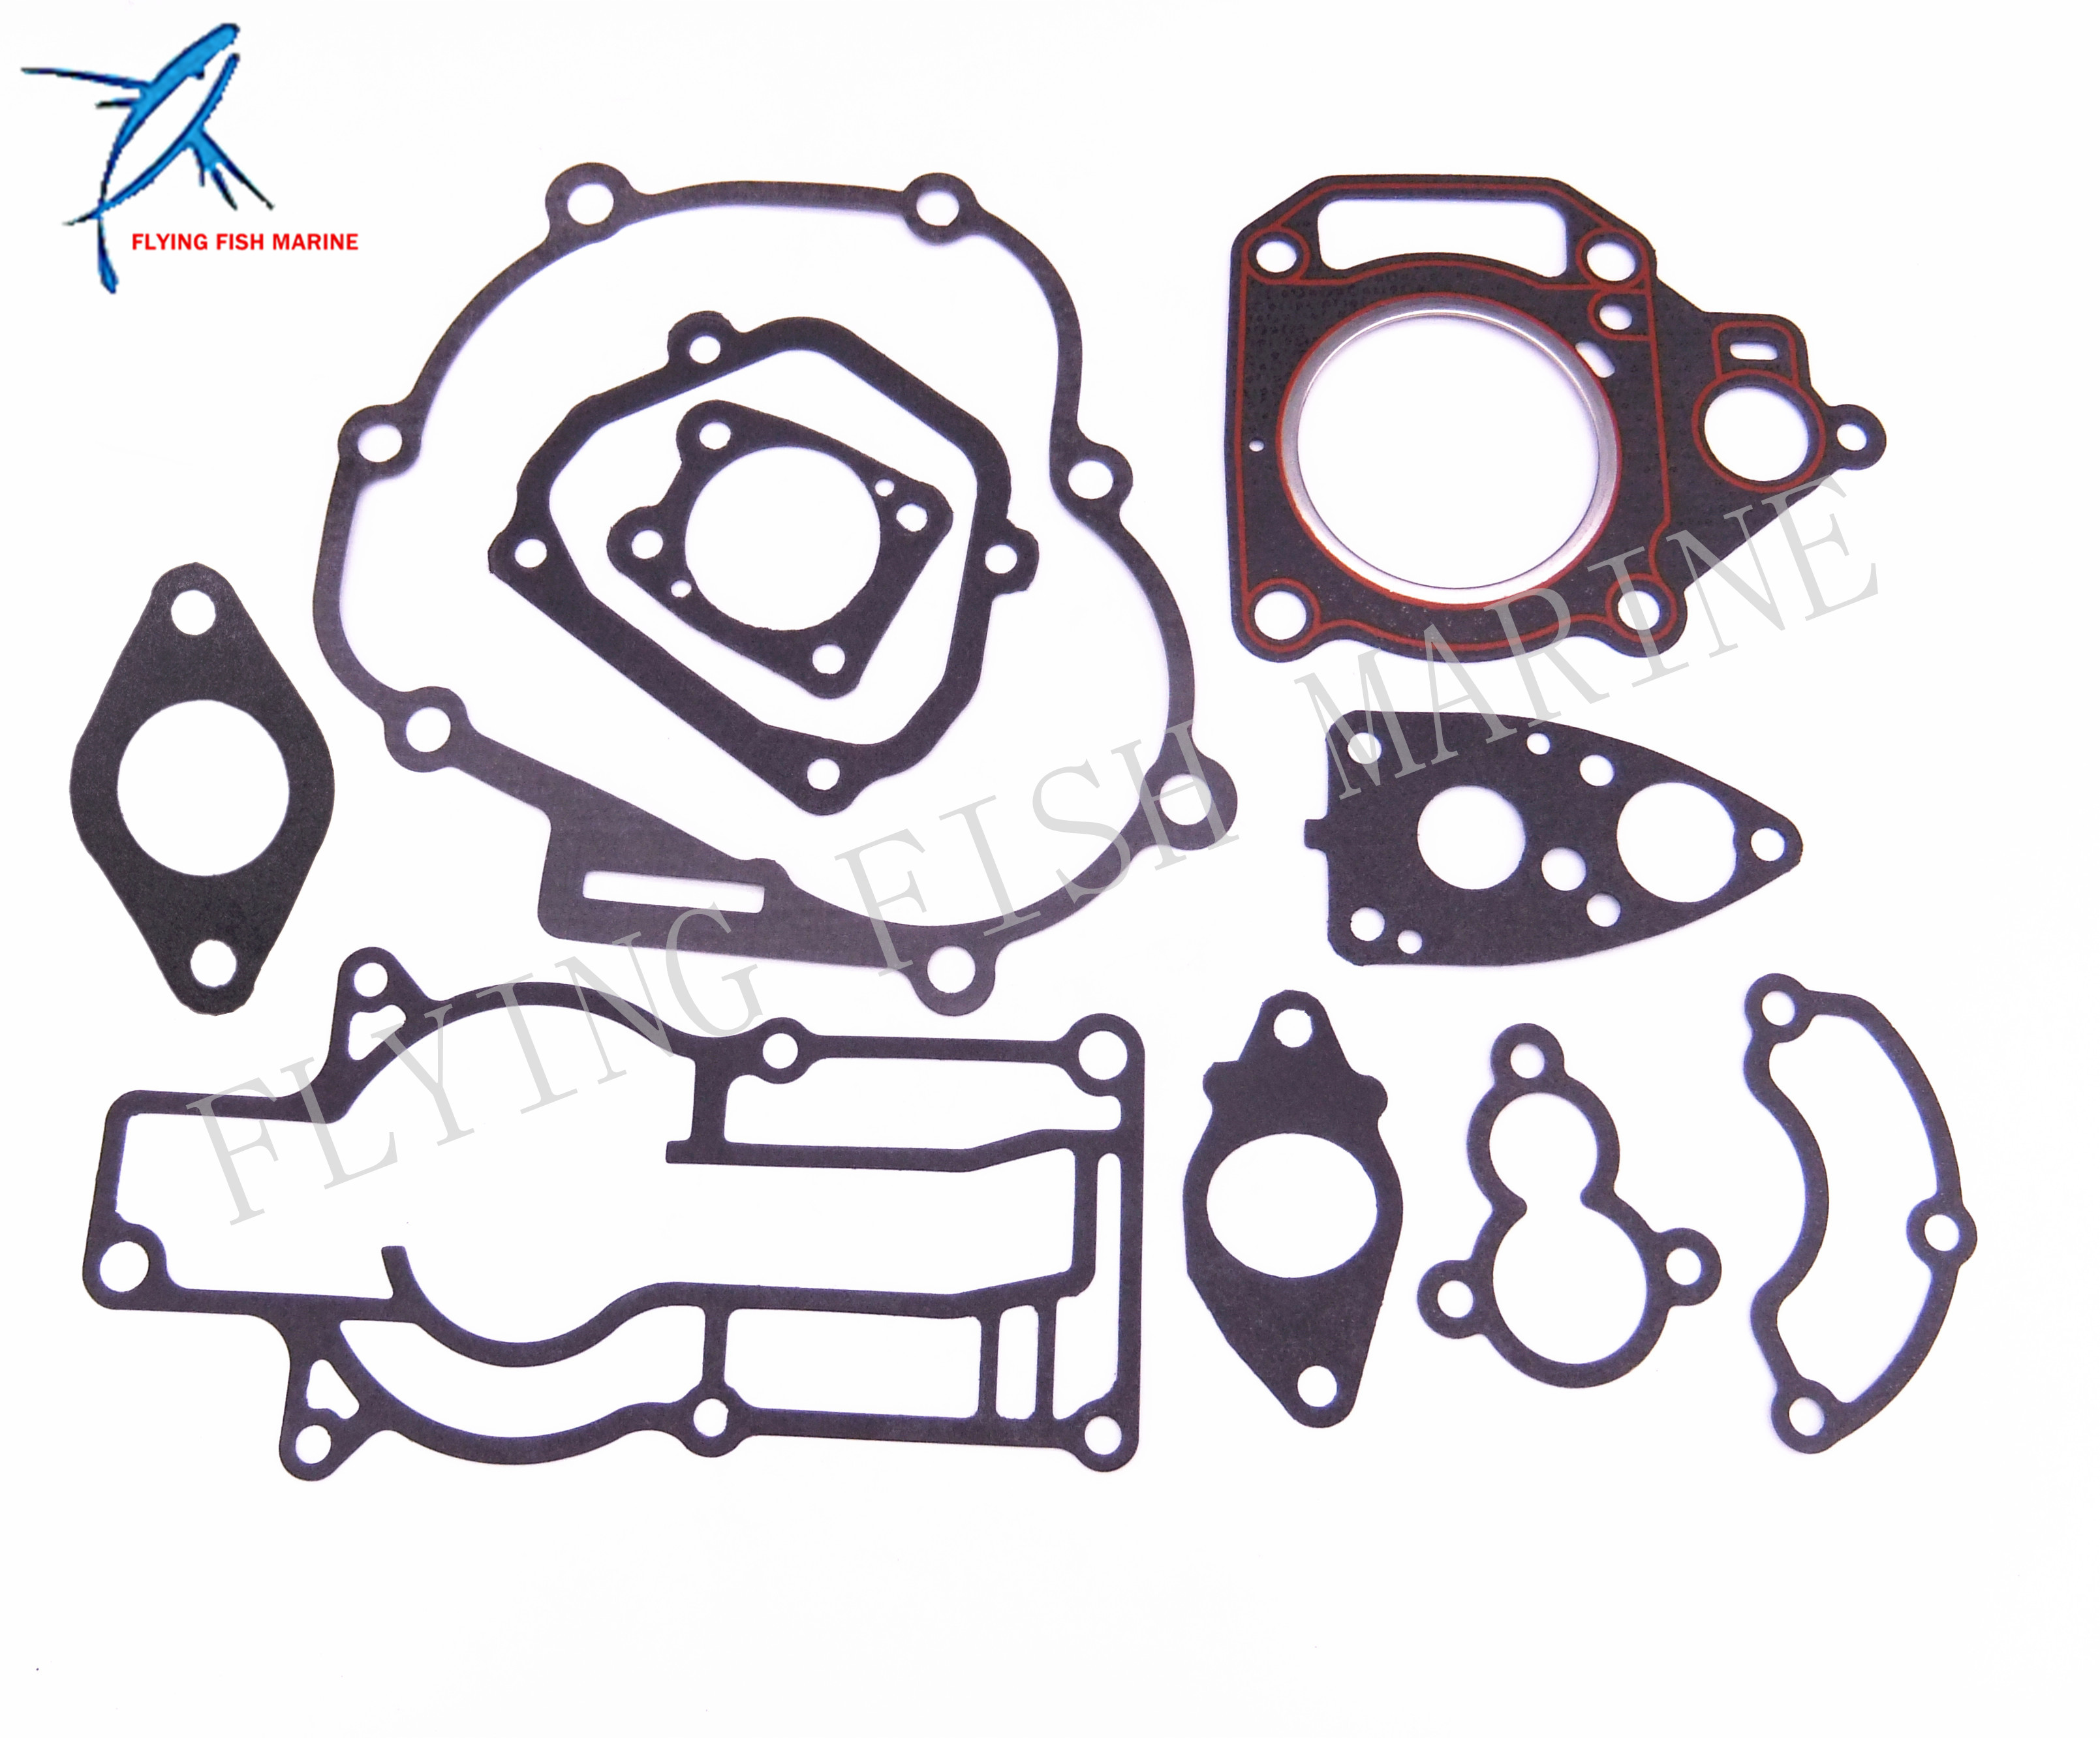 Complete Power Head Seal Gasket Kit for Yamaha F4 4HP 4-stroke Boat Outboard Motor